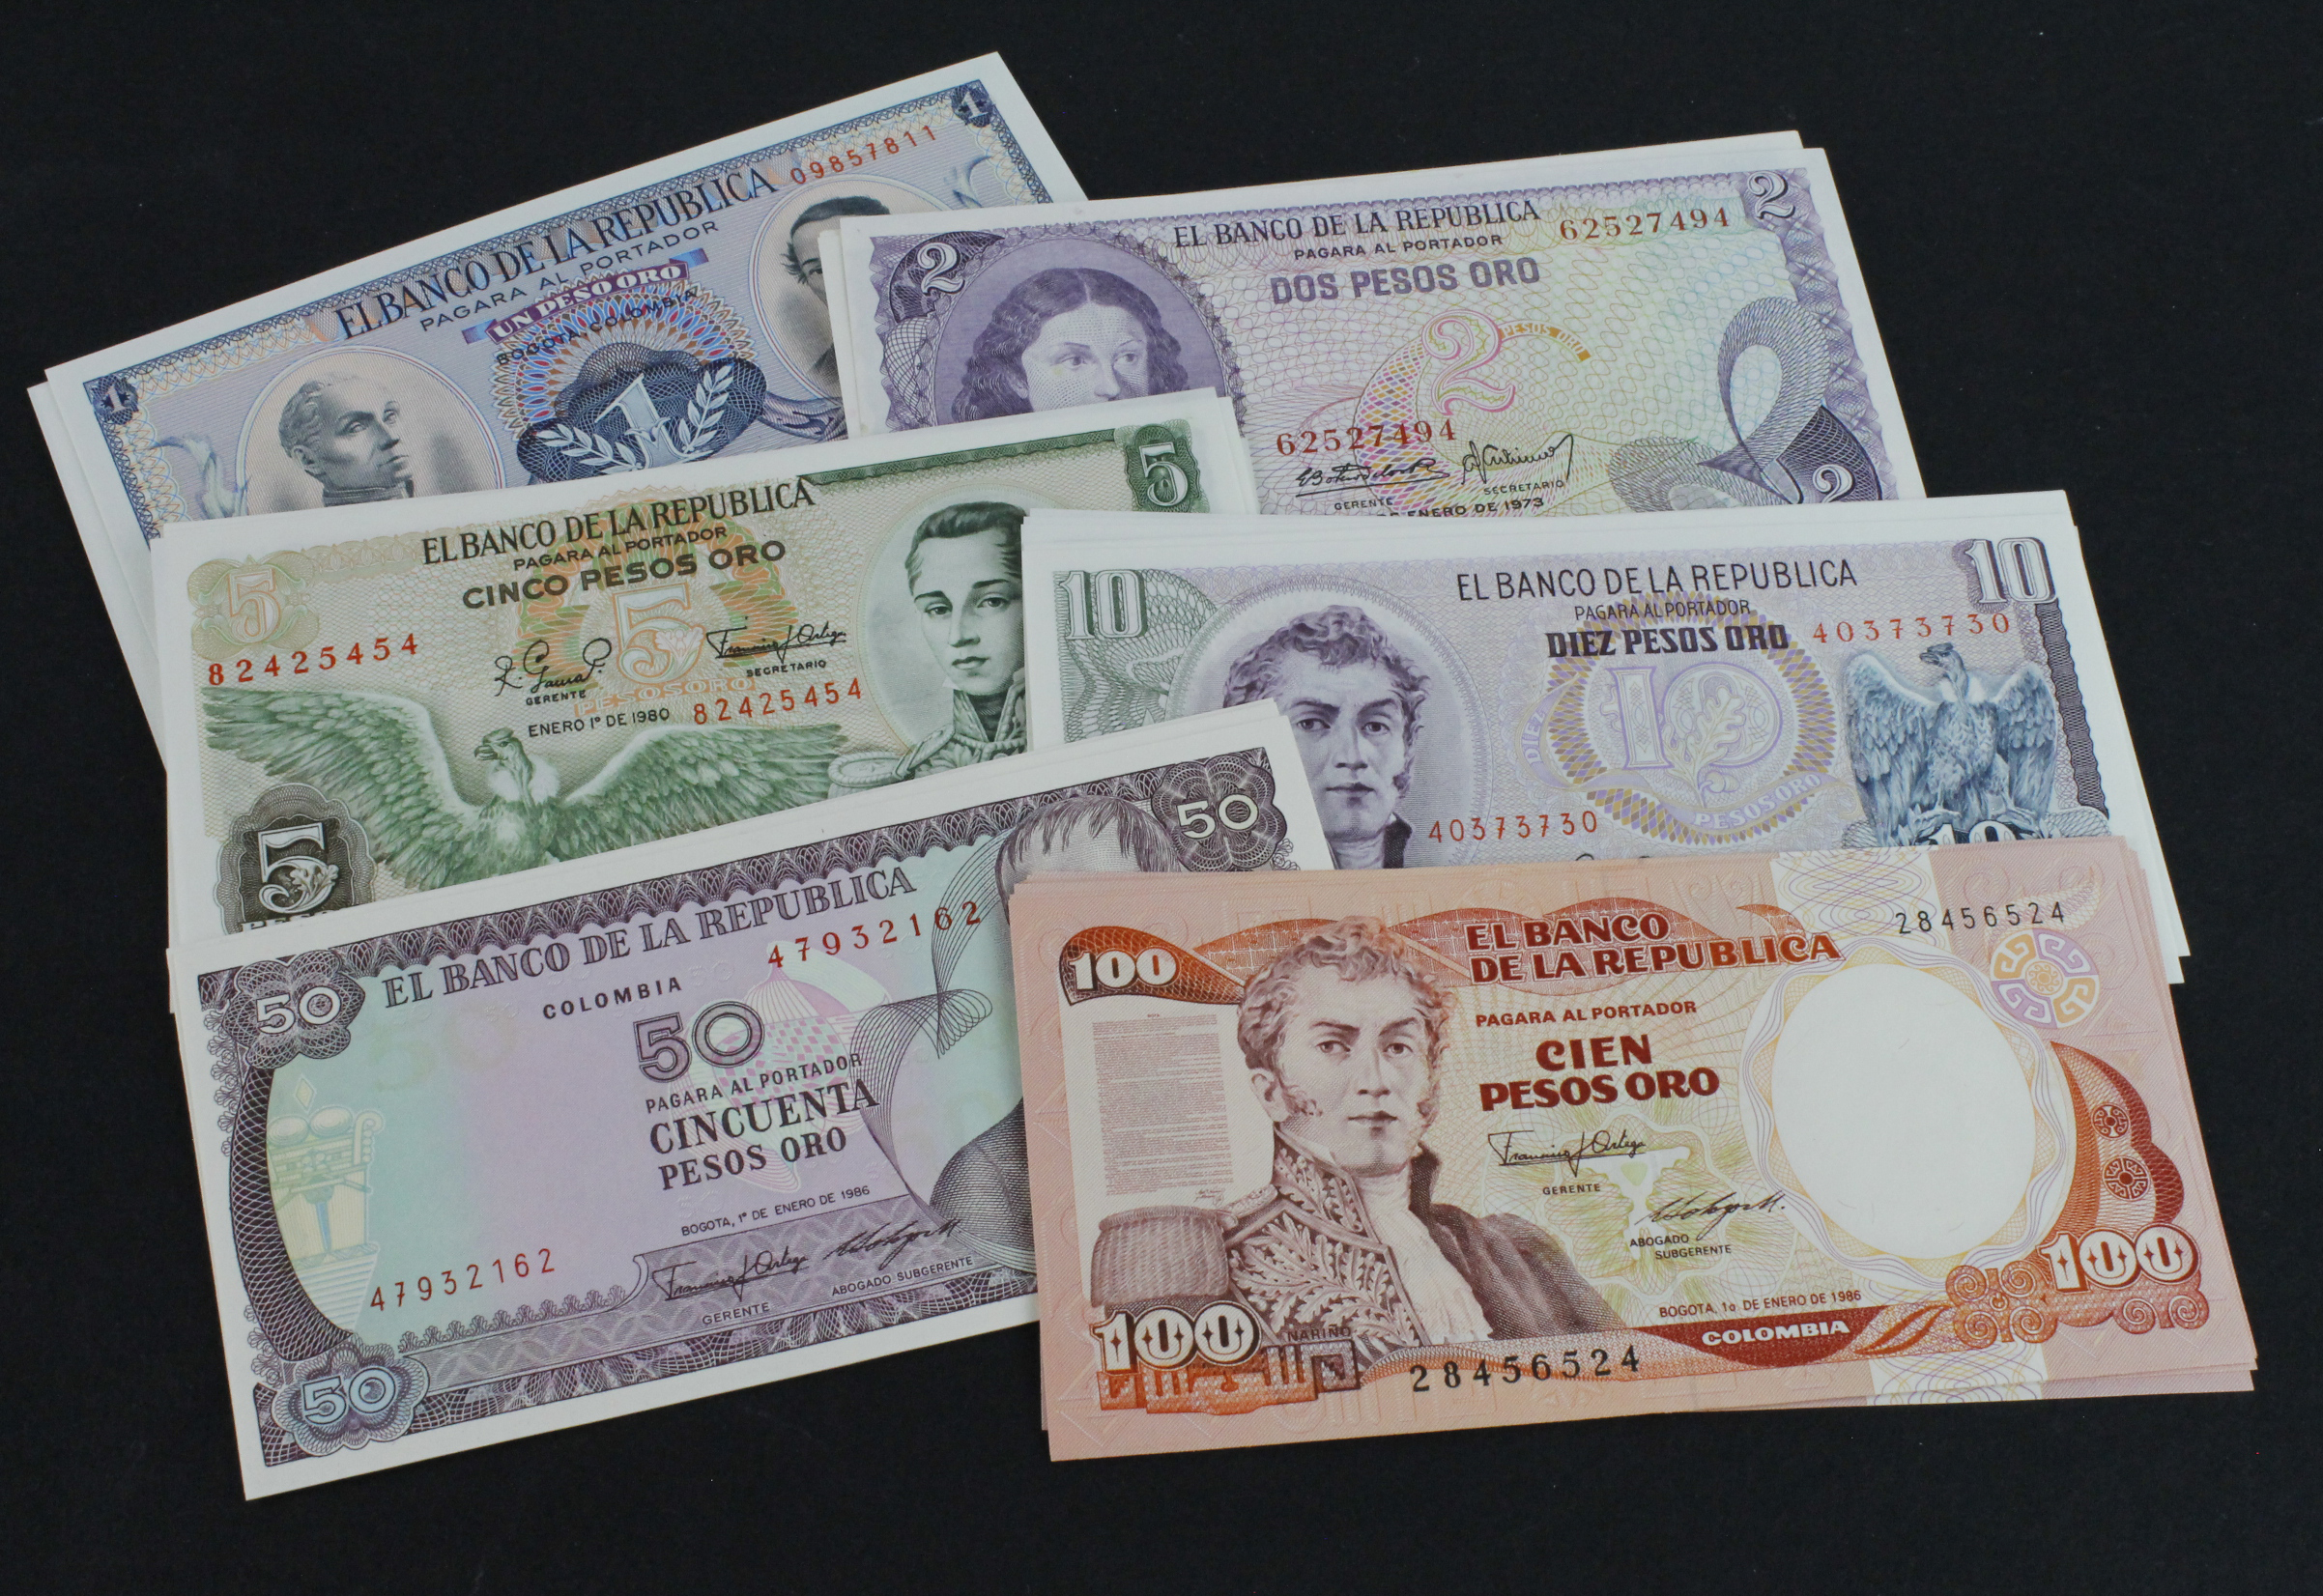 Colombia (60), 10 sets of 6 notes comprising 1 Peso Oro (10) dated 1973, 2 Pesos Oro (10) dated